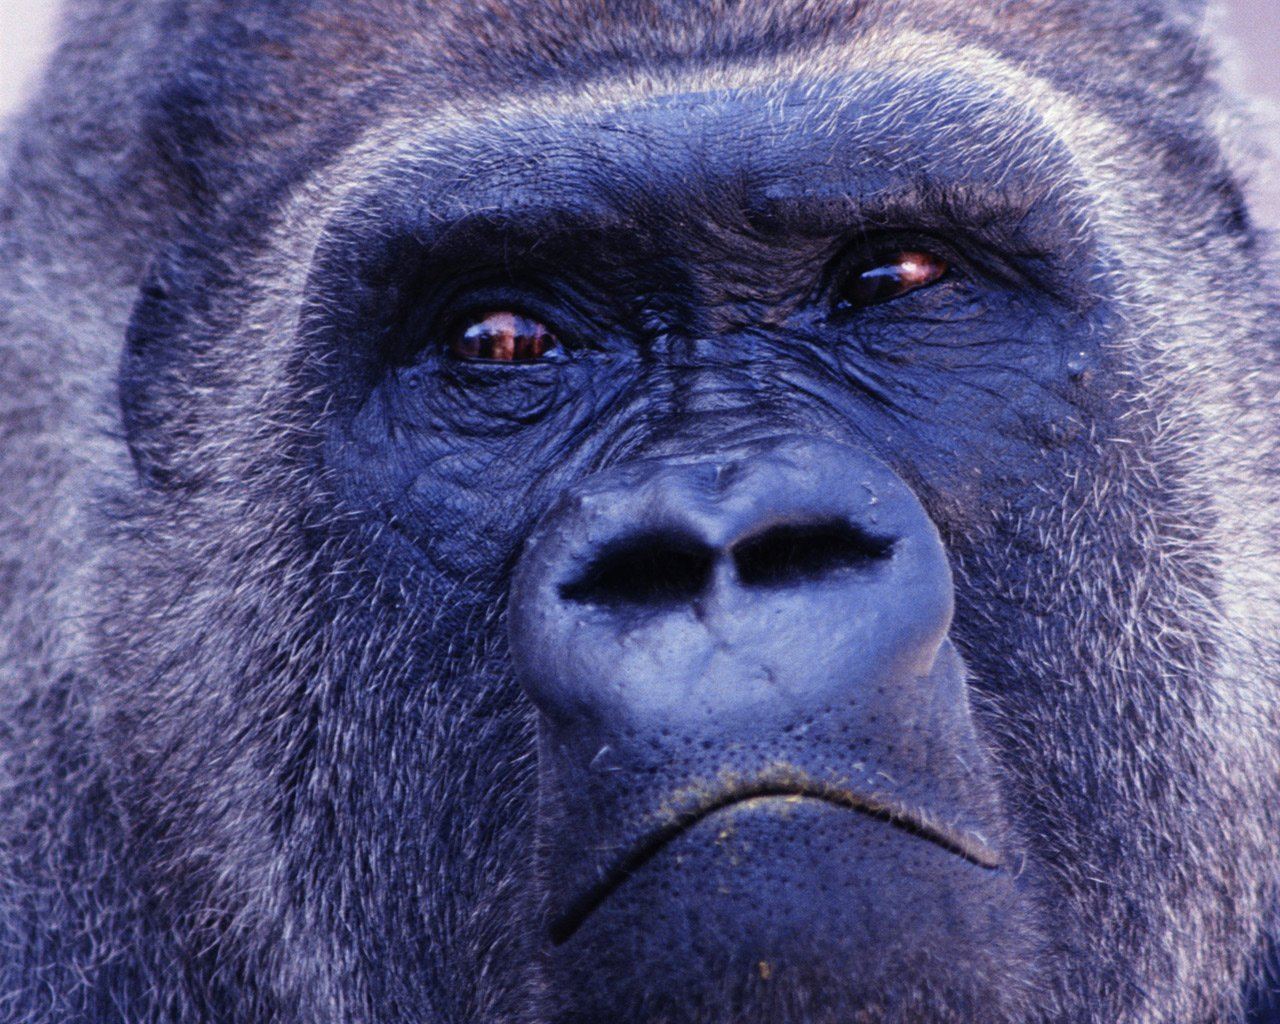 Wallpaper Collections gorilla background 1280x1024